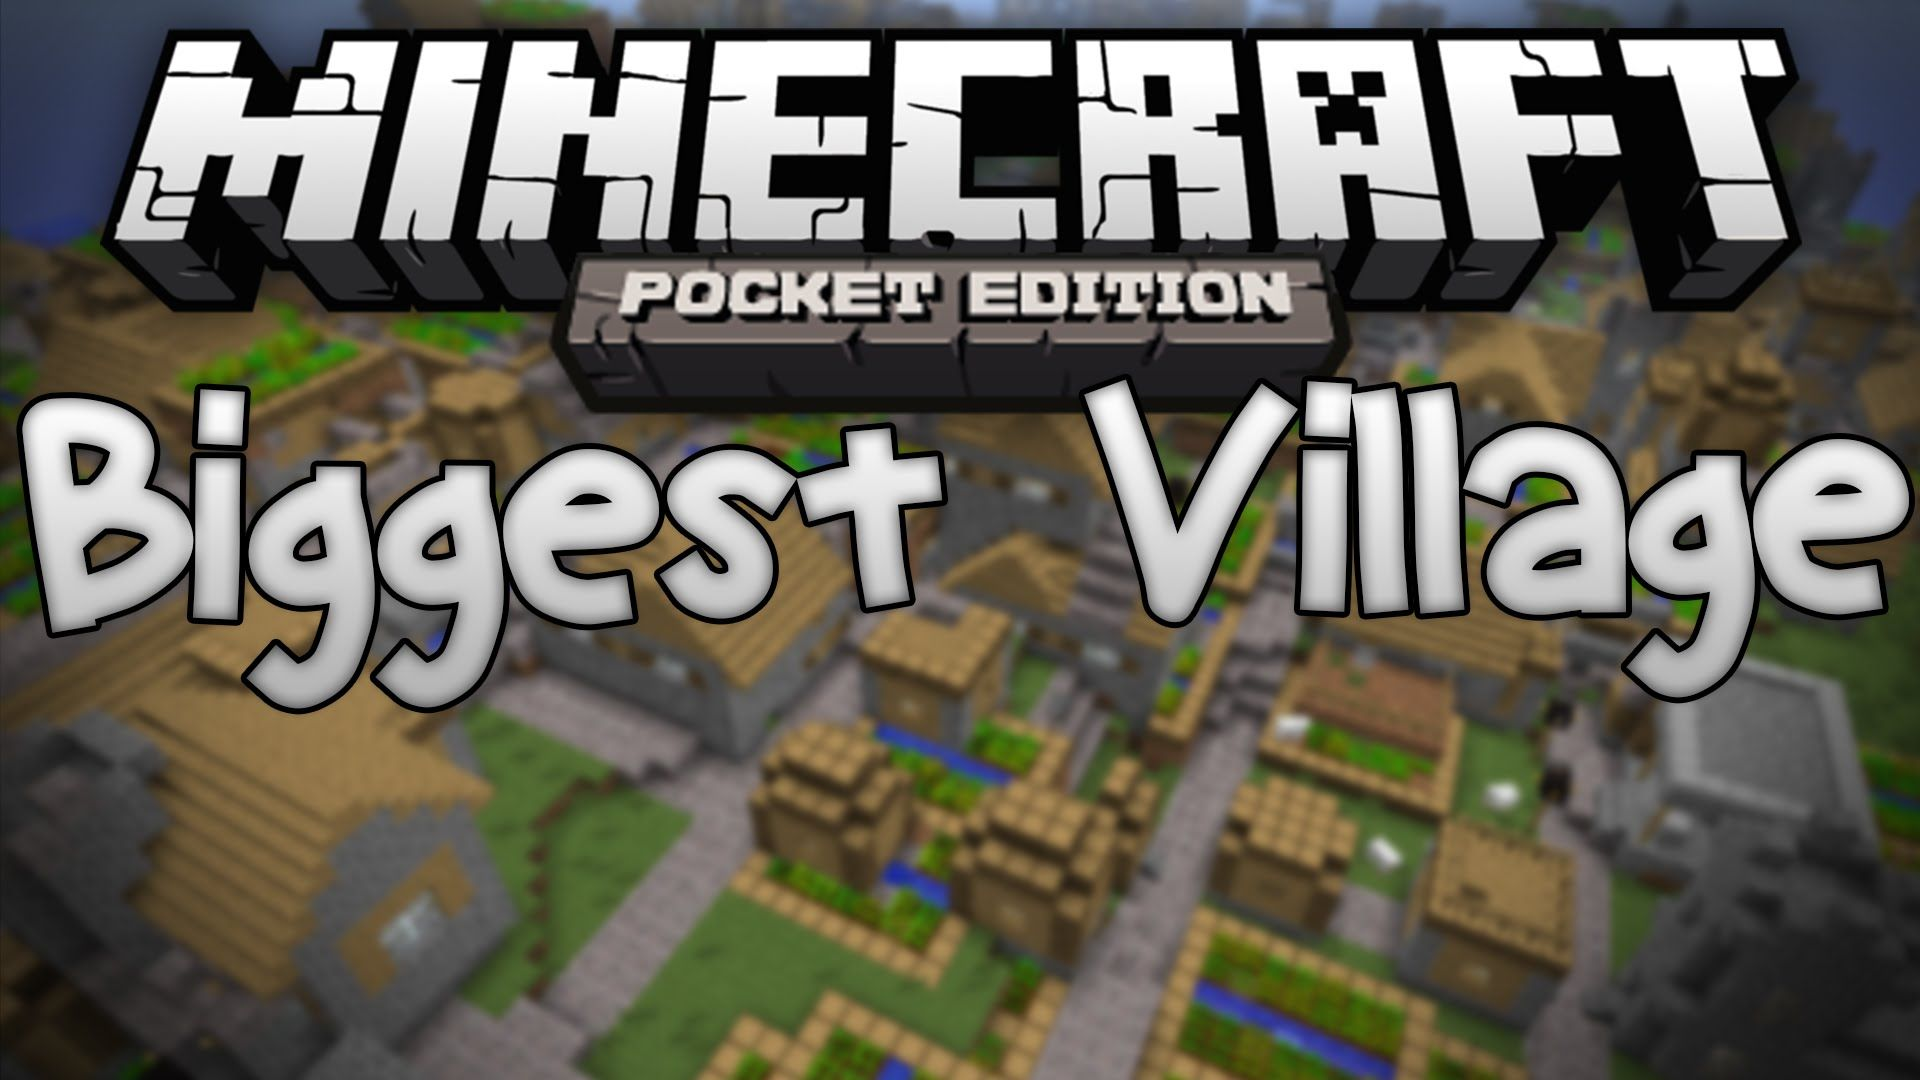 Minecraft 20 pc and minecraft pocket edition seeds w minecraft 20 pc and minecraft pocket edition seeds w unspeakablegaming today we take a look at the top 20 best 19 pocket edition and minecraft baditri Image collections